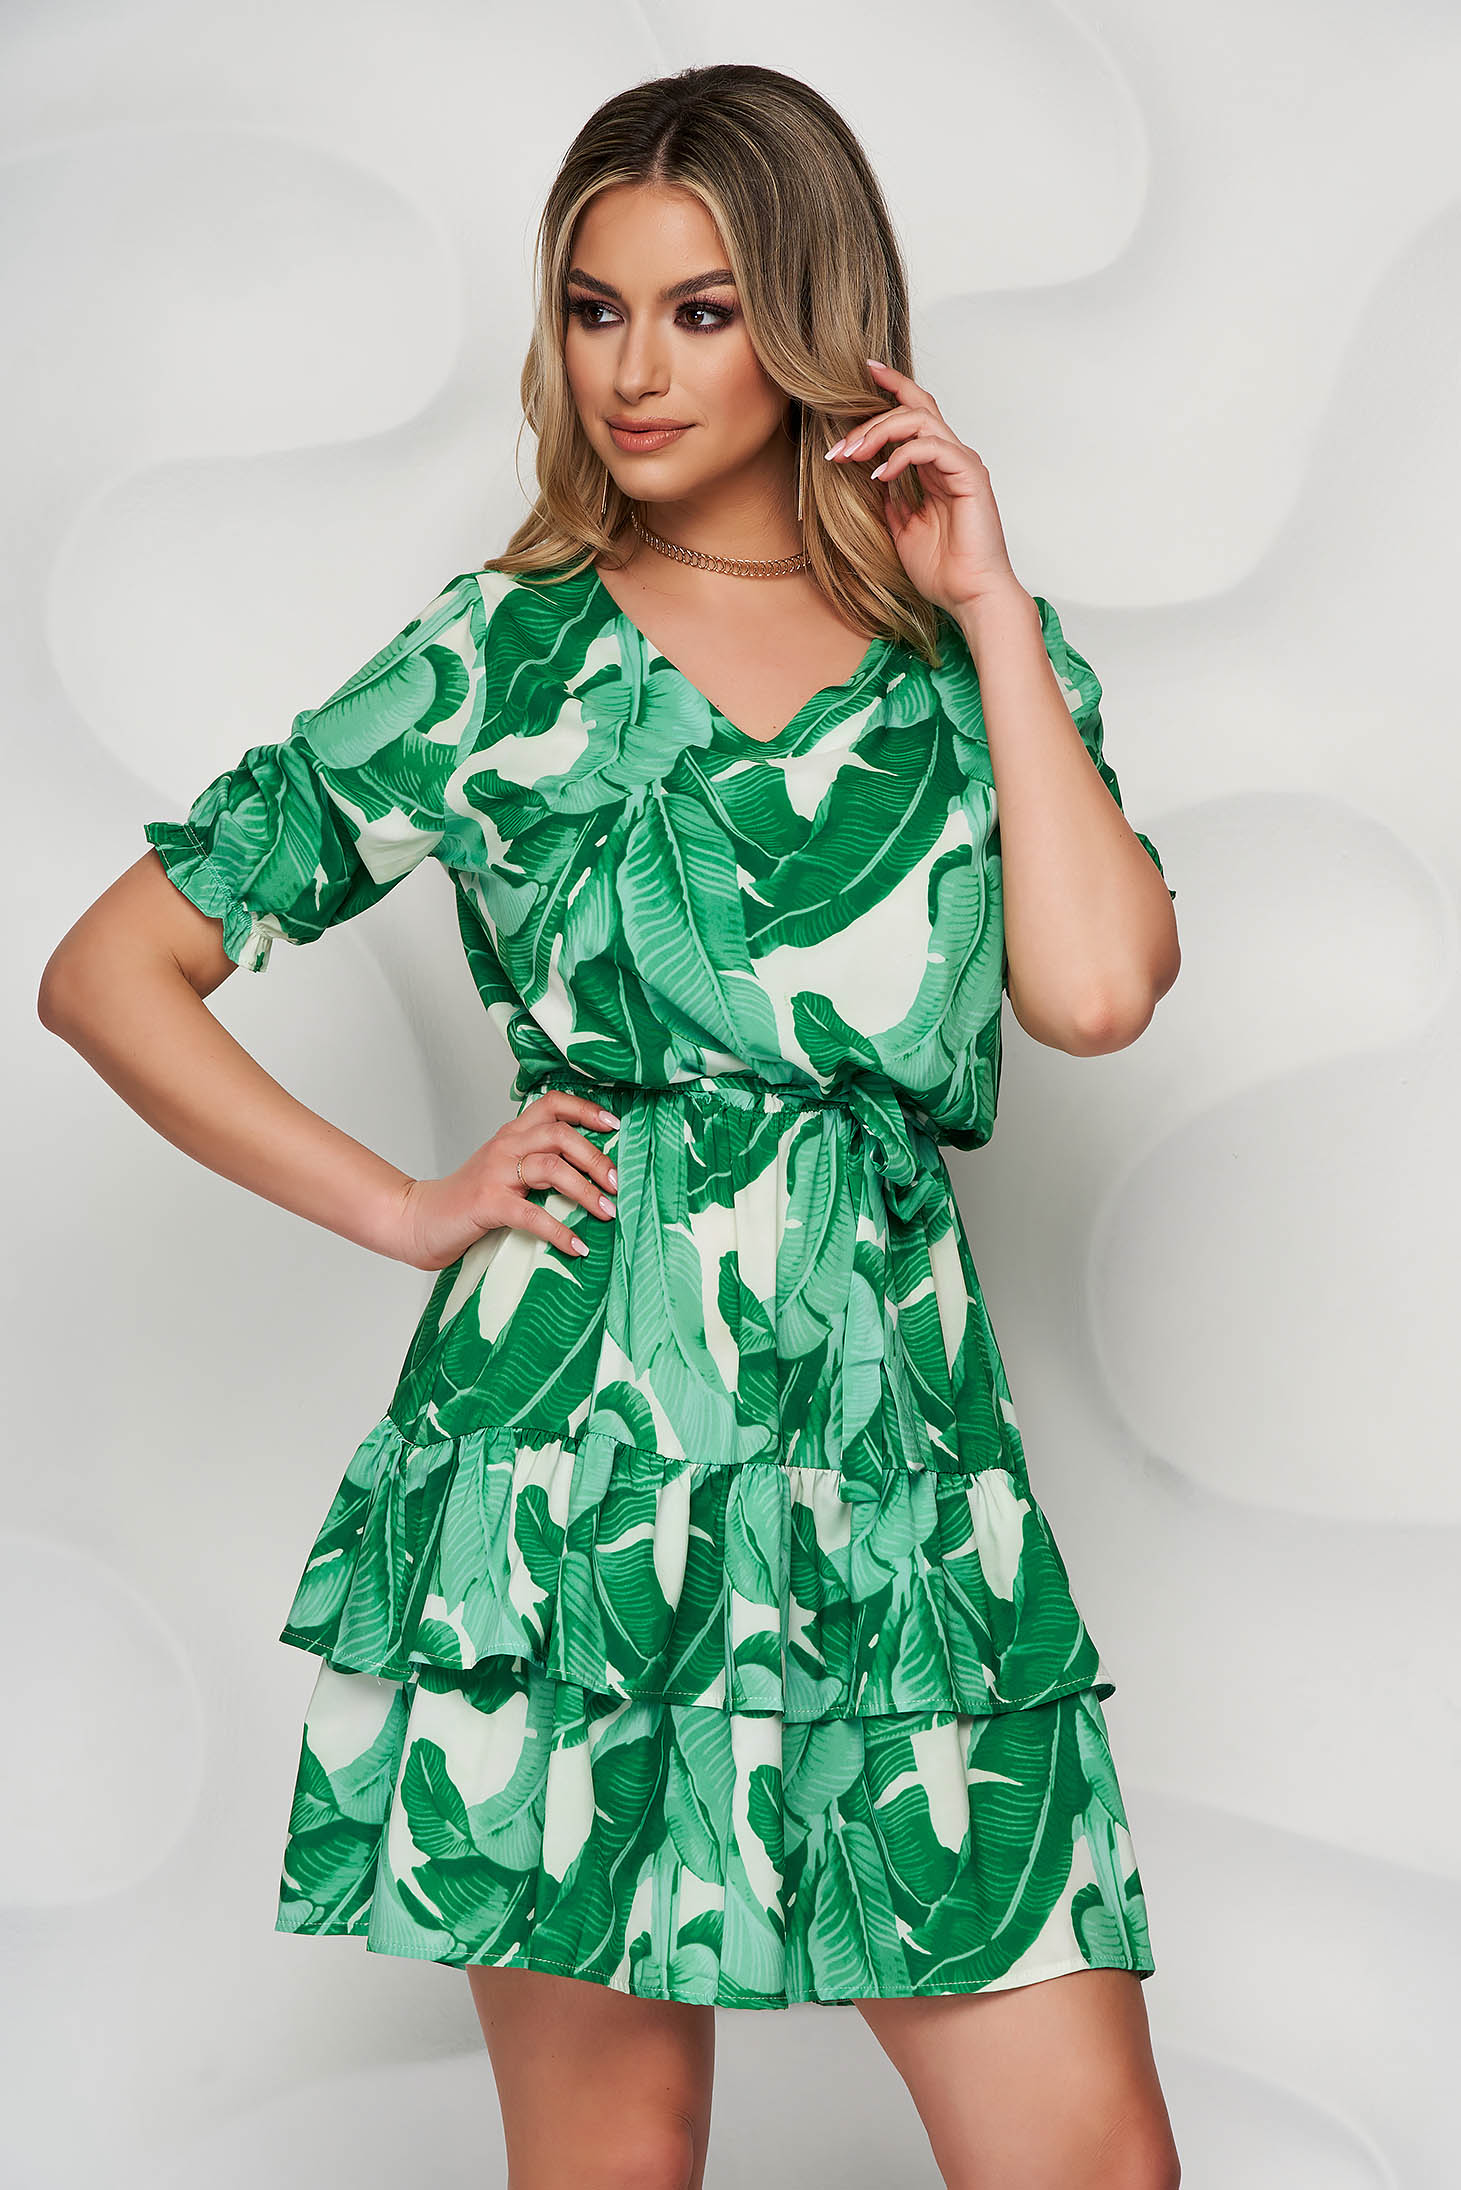 StarShinerS green dress short cut daily airy fabric cloche with elastic waist short sleeves